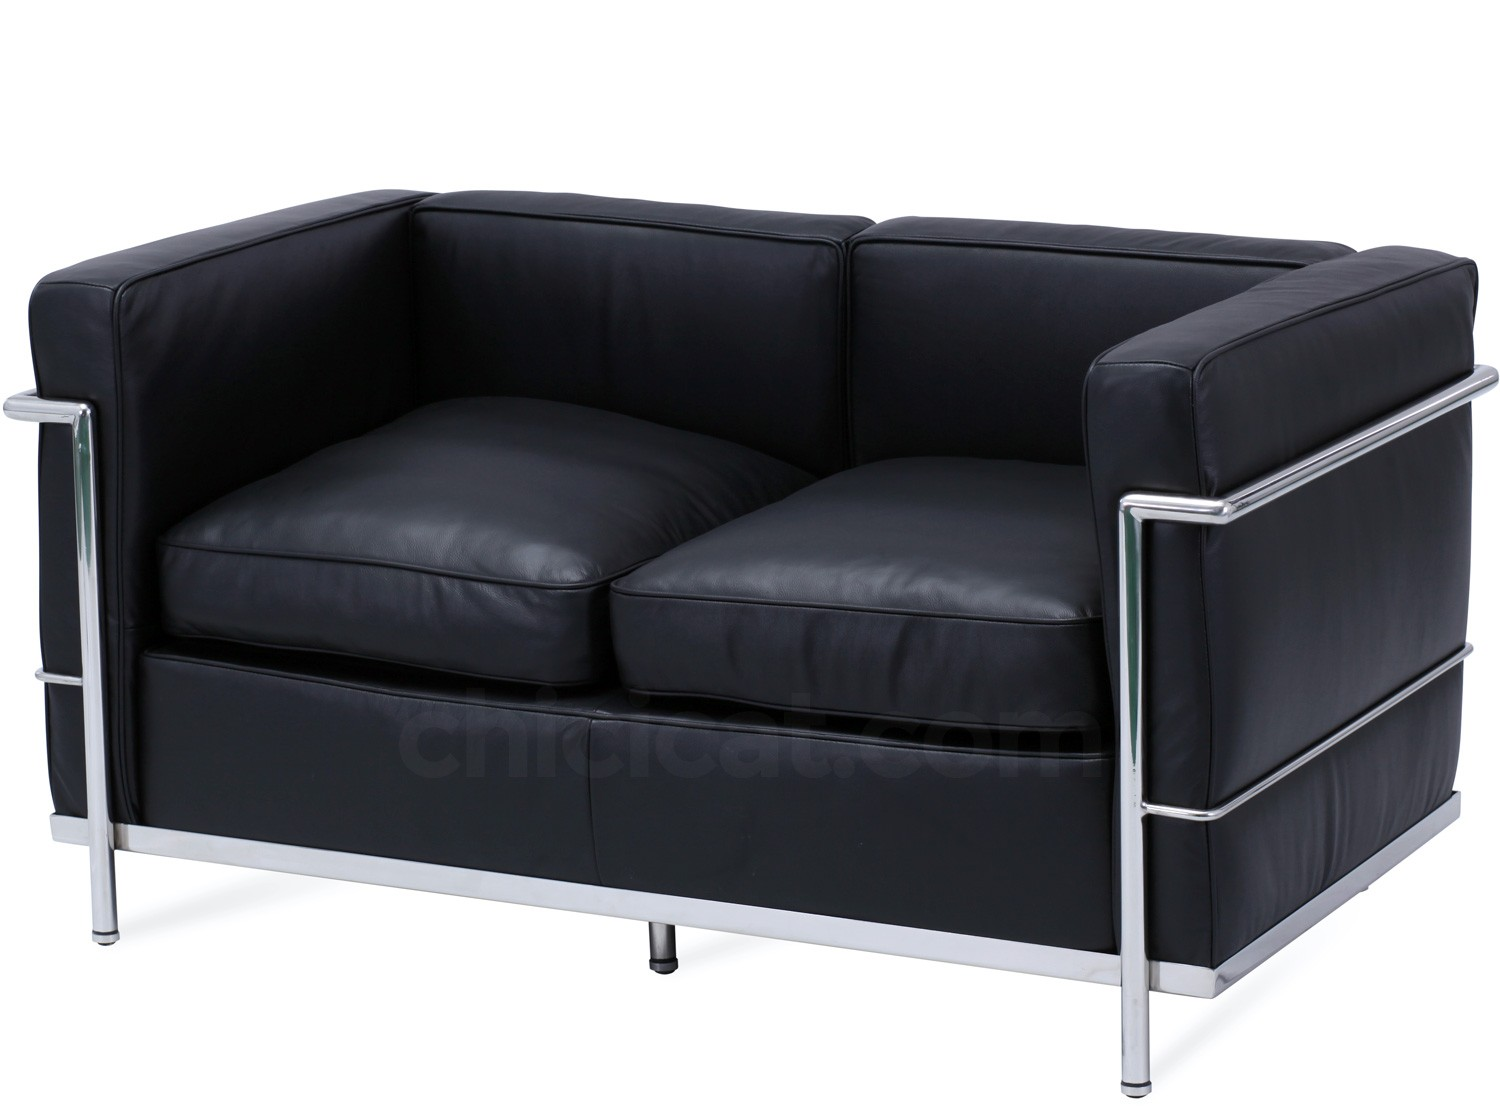 le corbusier lc2 sofa 2 seater petit confort platinum replica. Black Bedroom Furniture Sets. Home Design Ideas